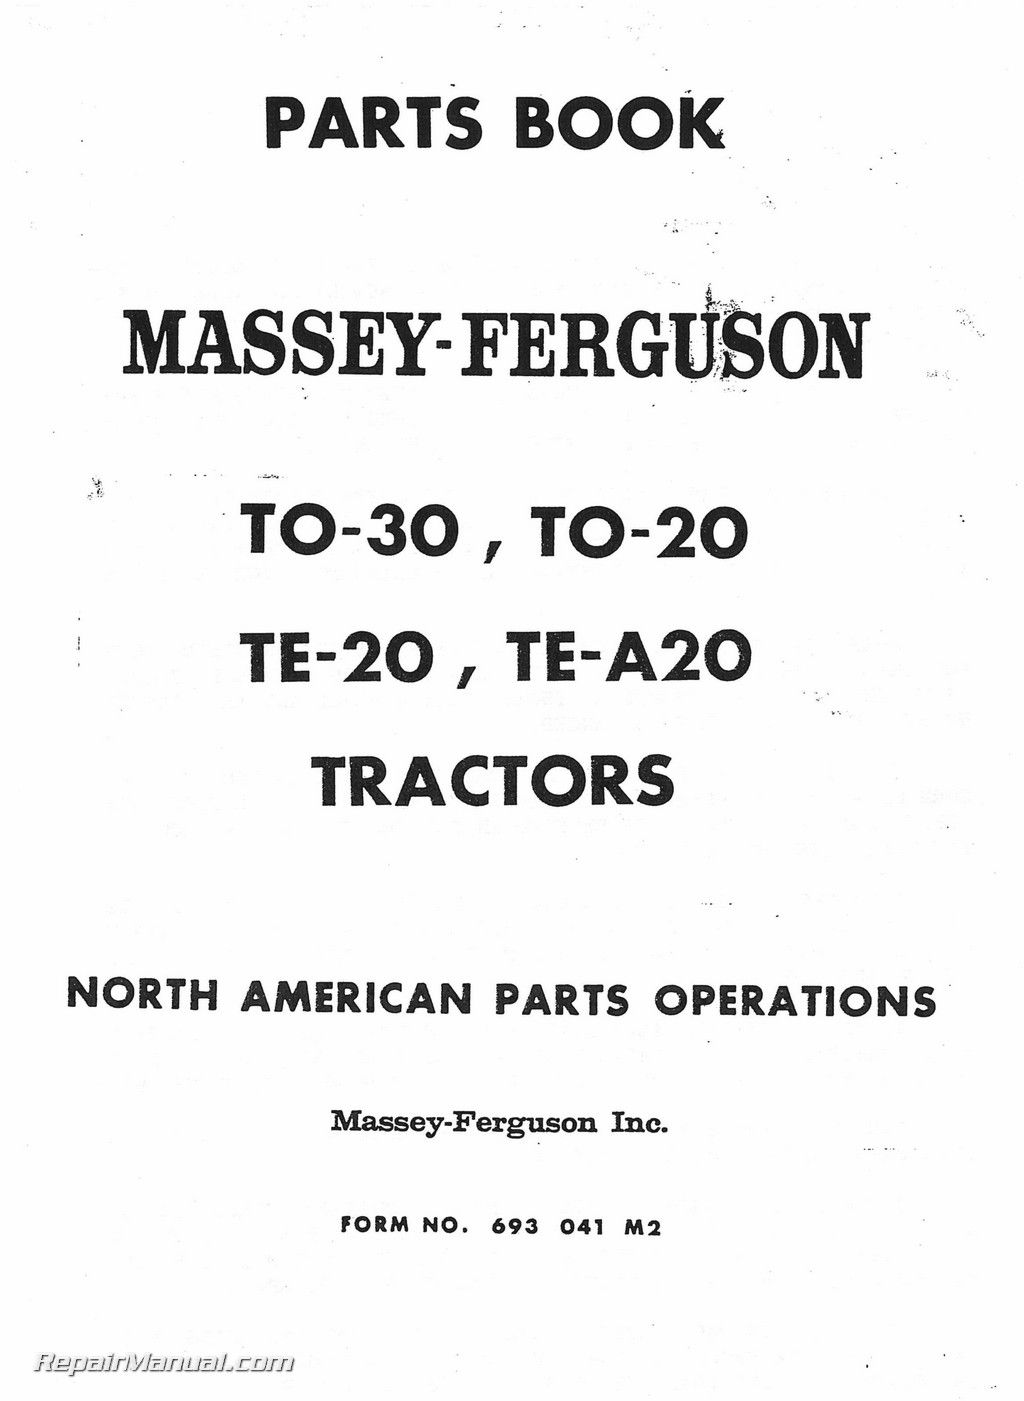 637357451528858606e0764157c0a581 massey ferguson to 30 to 20 te 20 tea 20 parts manual tractor